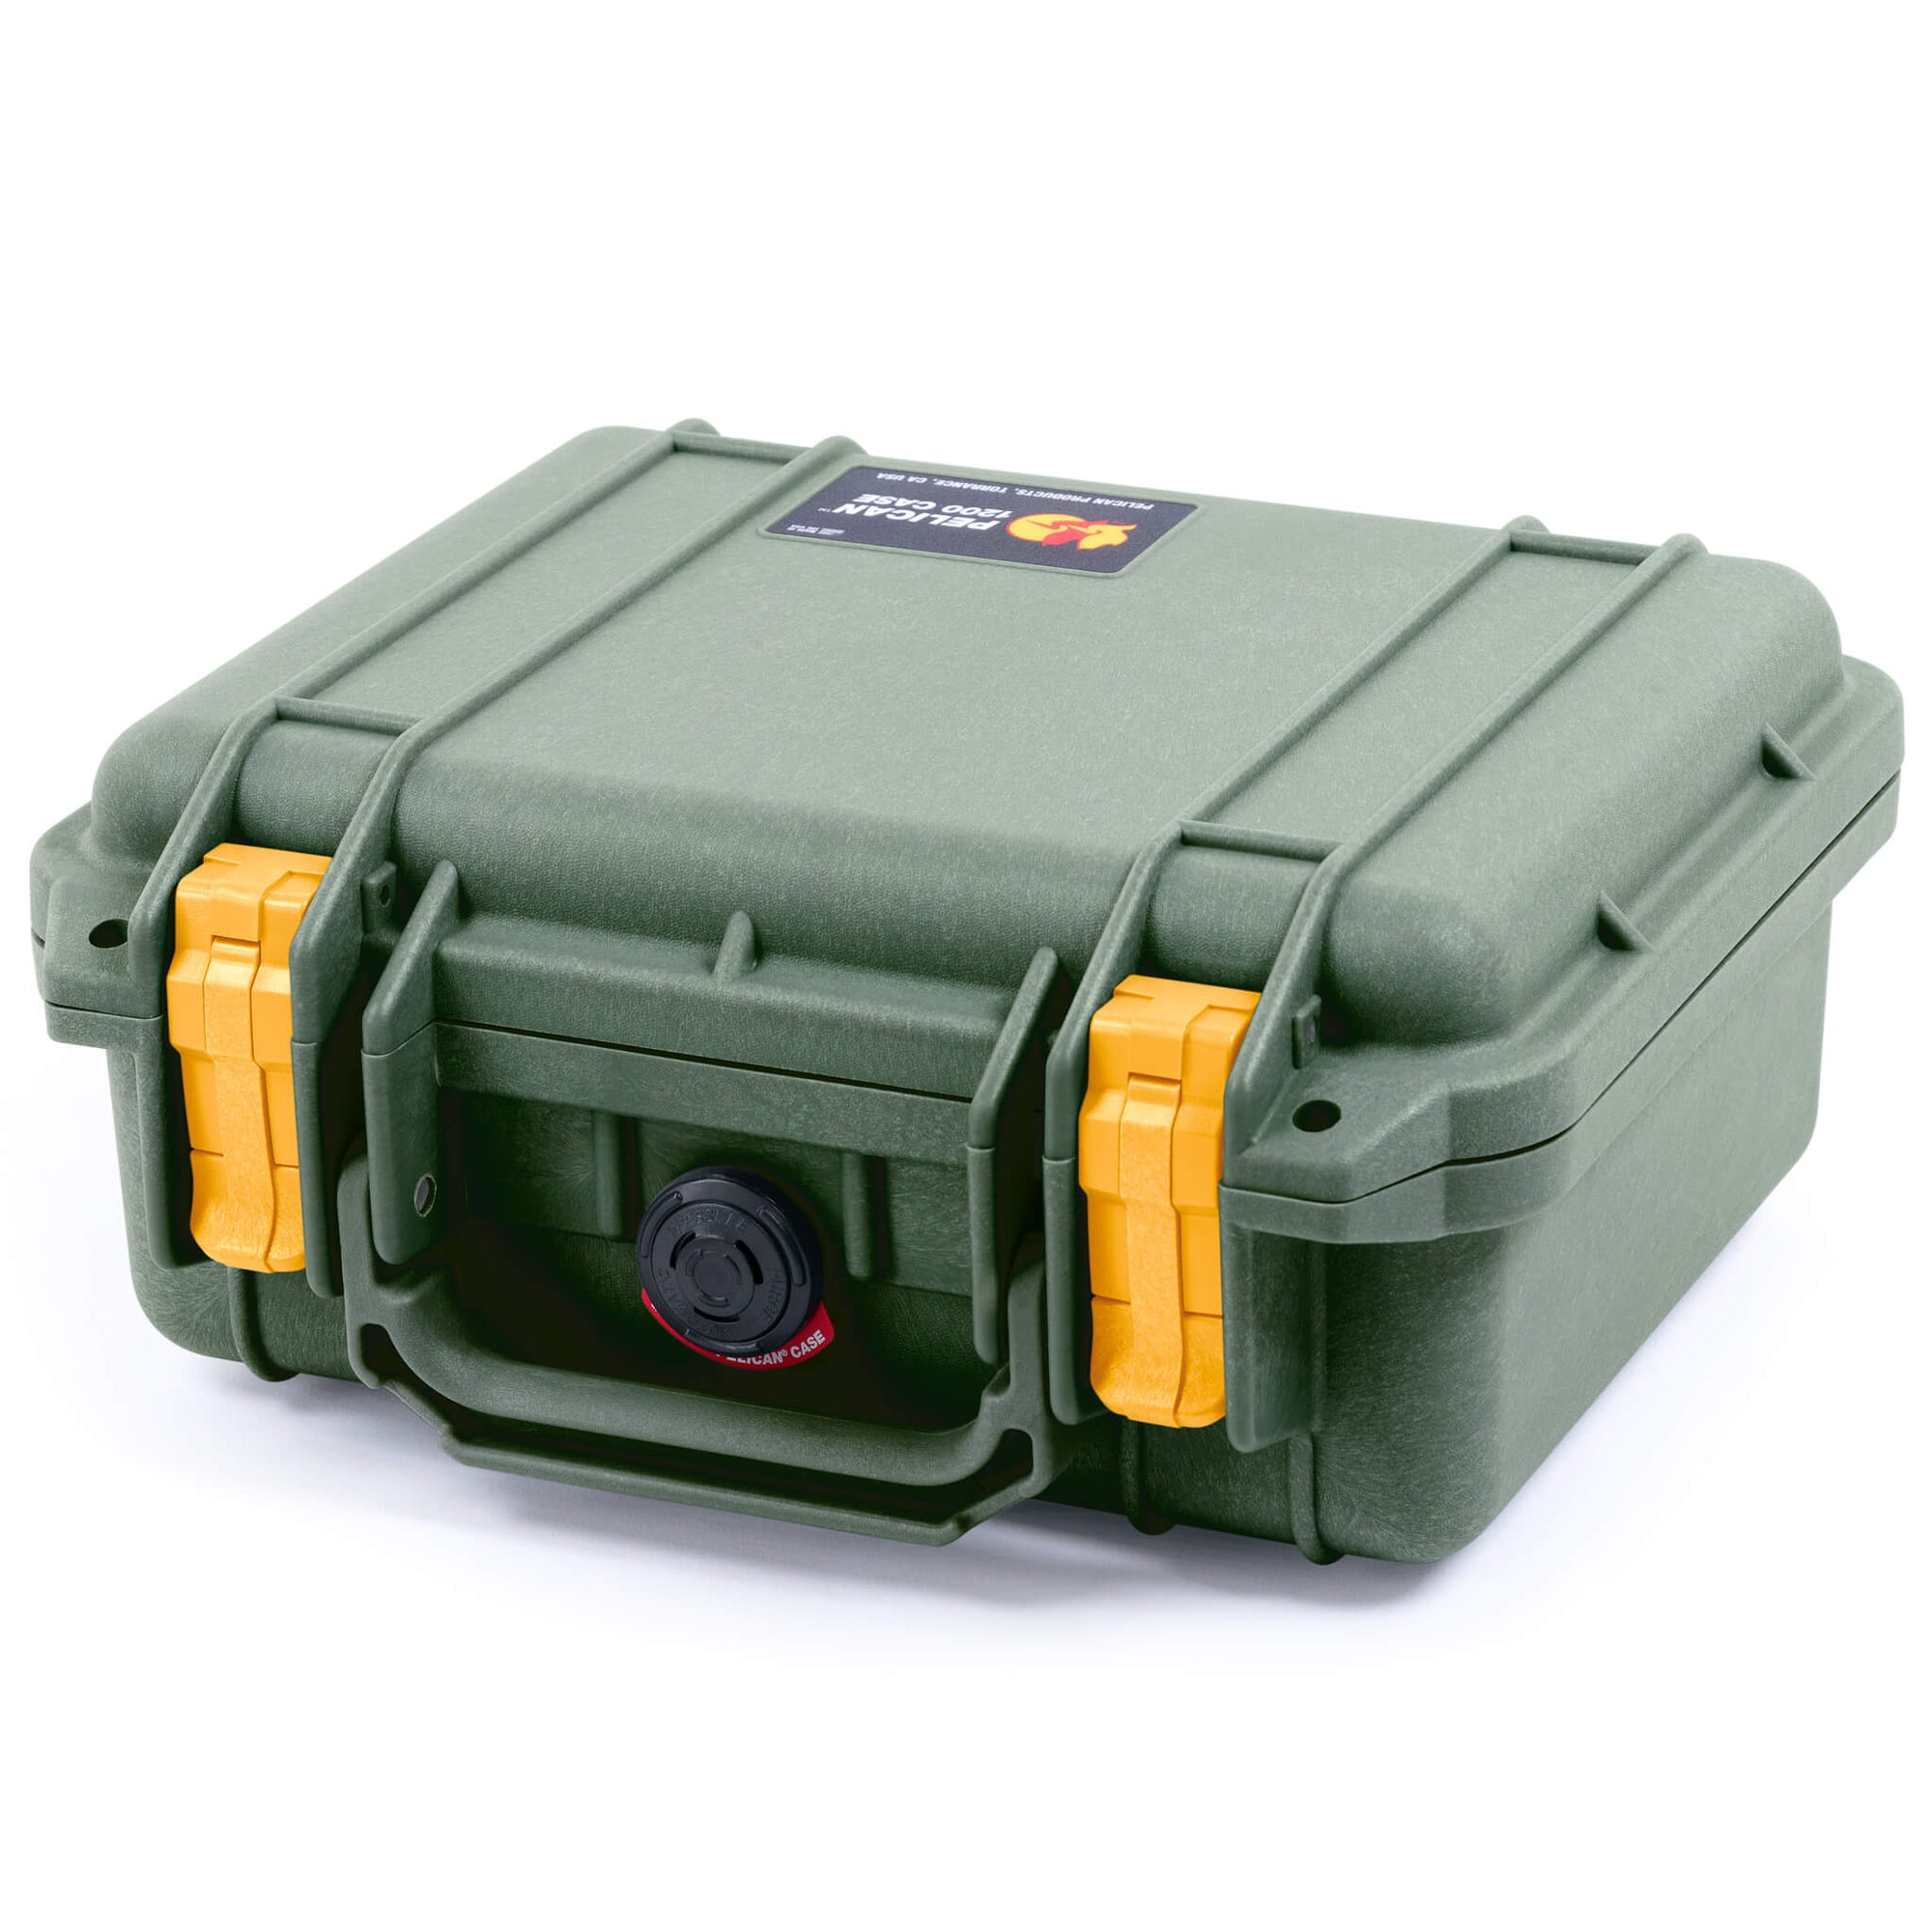 Pelican 1200 Case, OD Green with Yellow Handle & Latches - Pelican Color Case